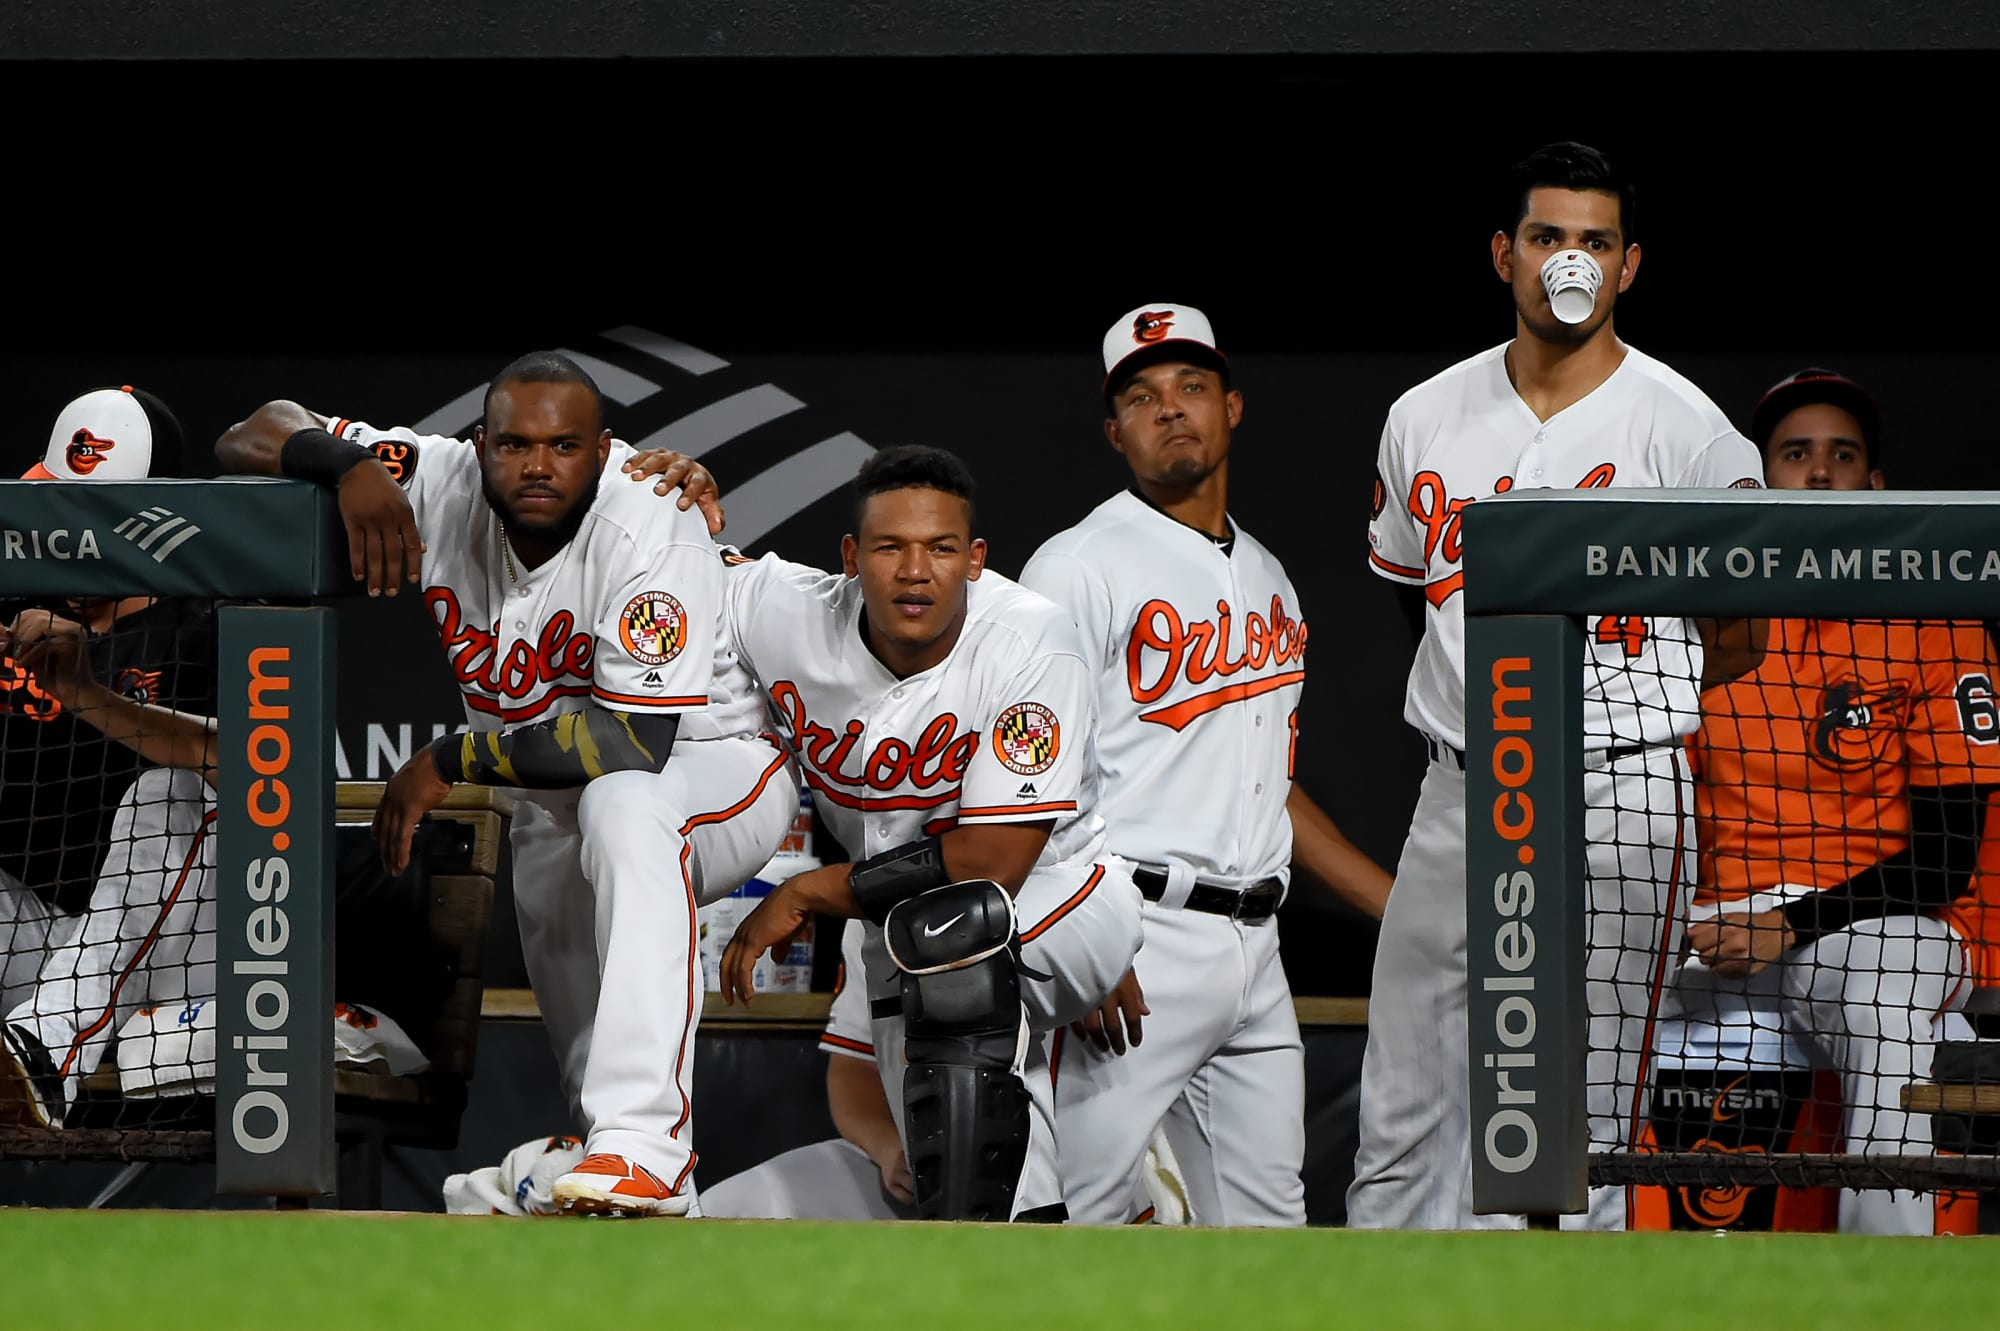 Baltimore Orioles: Players Counter MLB with Creative Reopening Offer